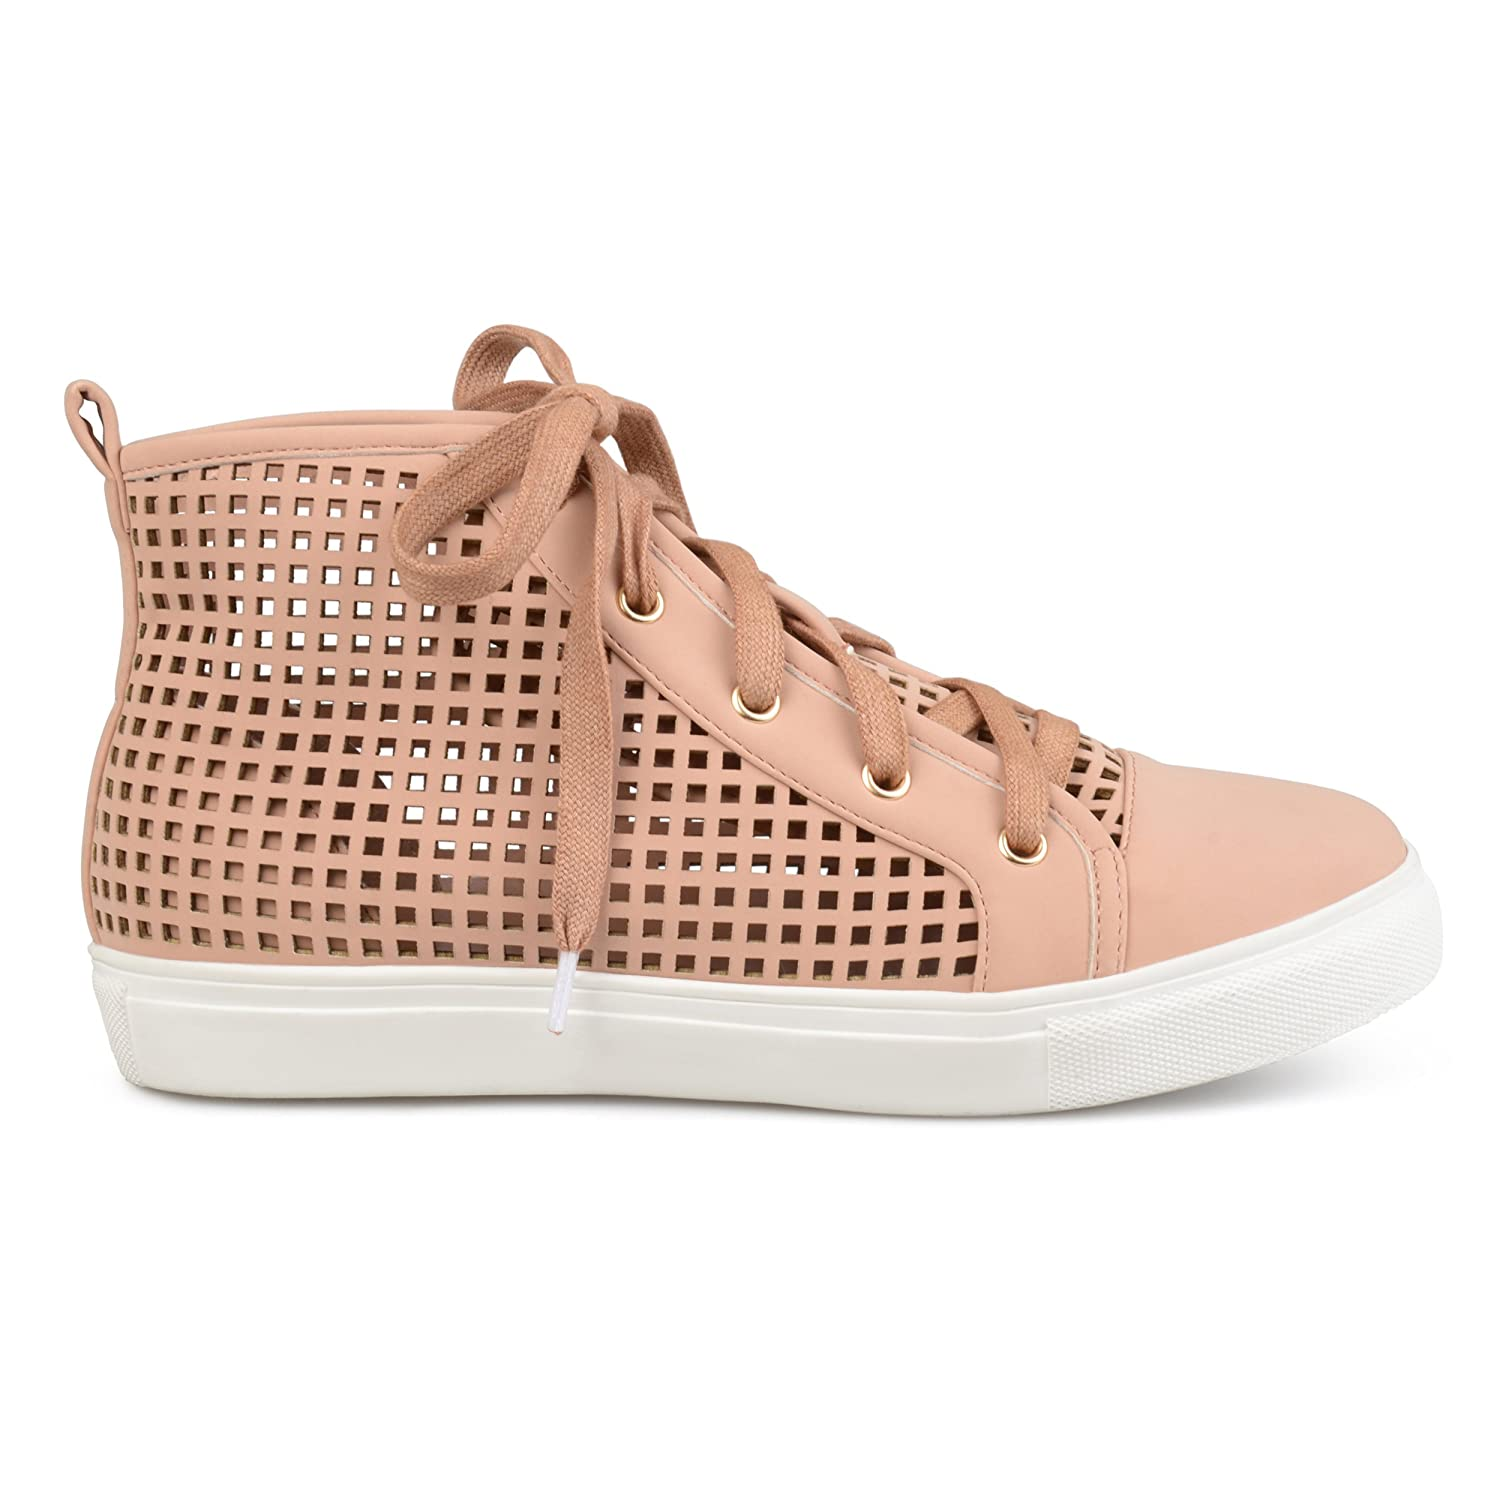 Brinley Co Womens Faux Leather High-Top Lace-up Laser-Cut Sneakers B073RSD9MM 7.5 B(M) US|Mauve